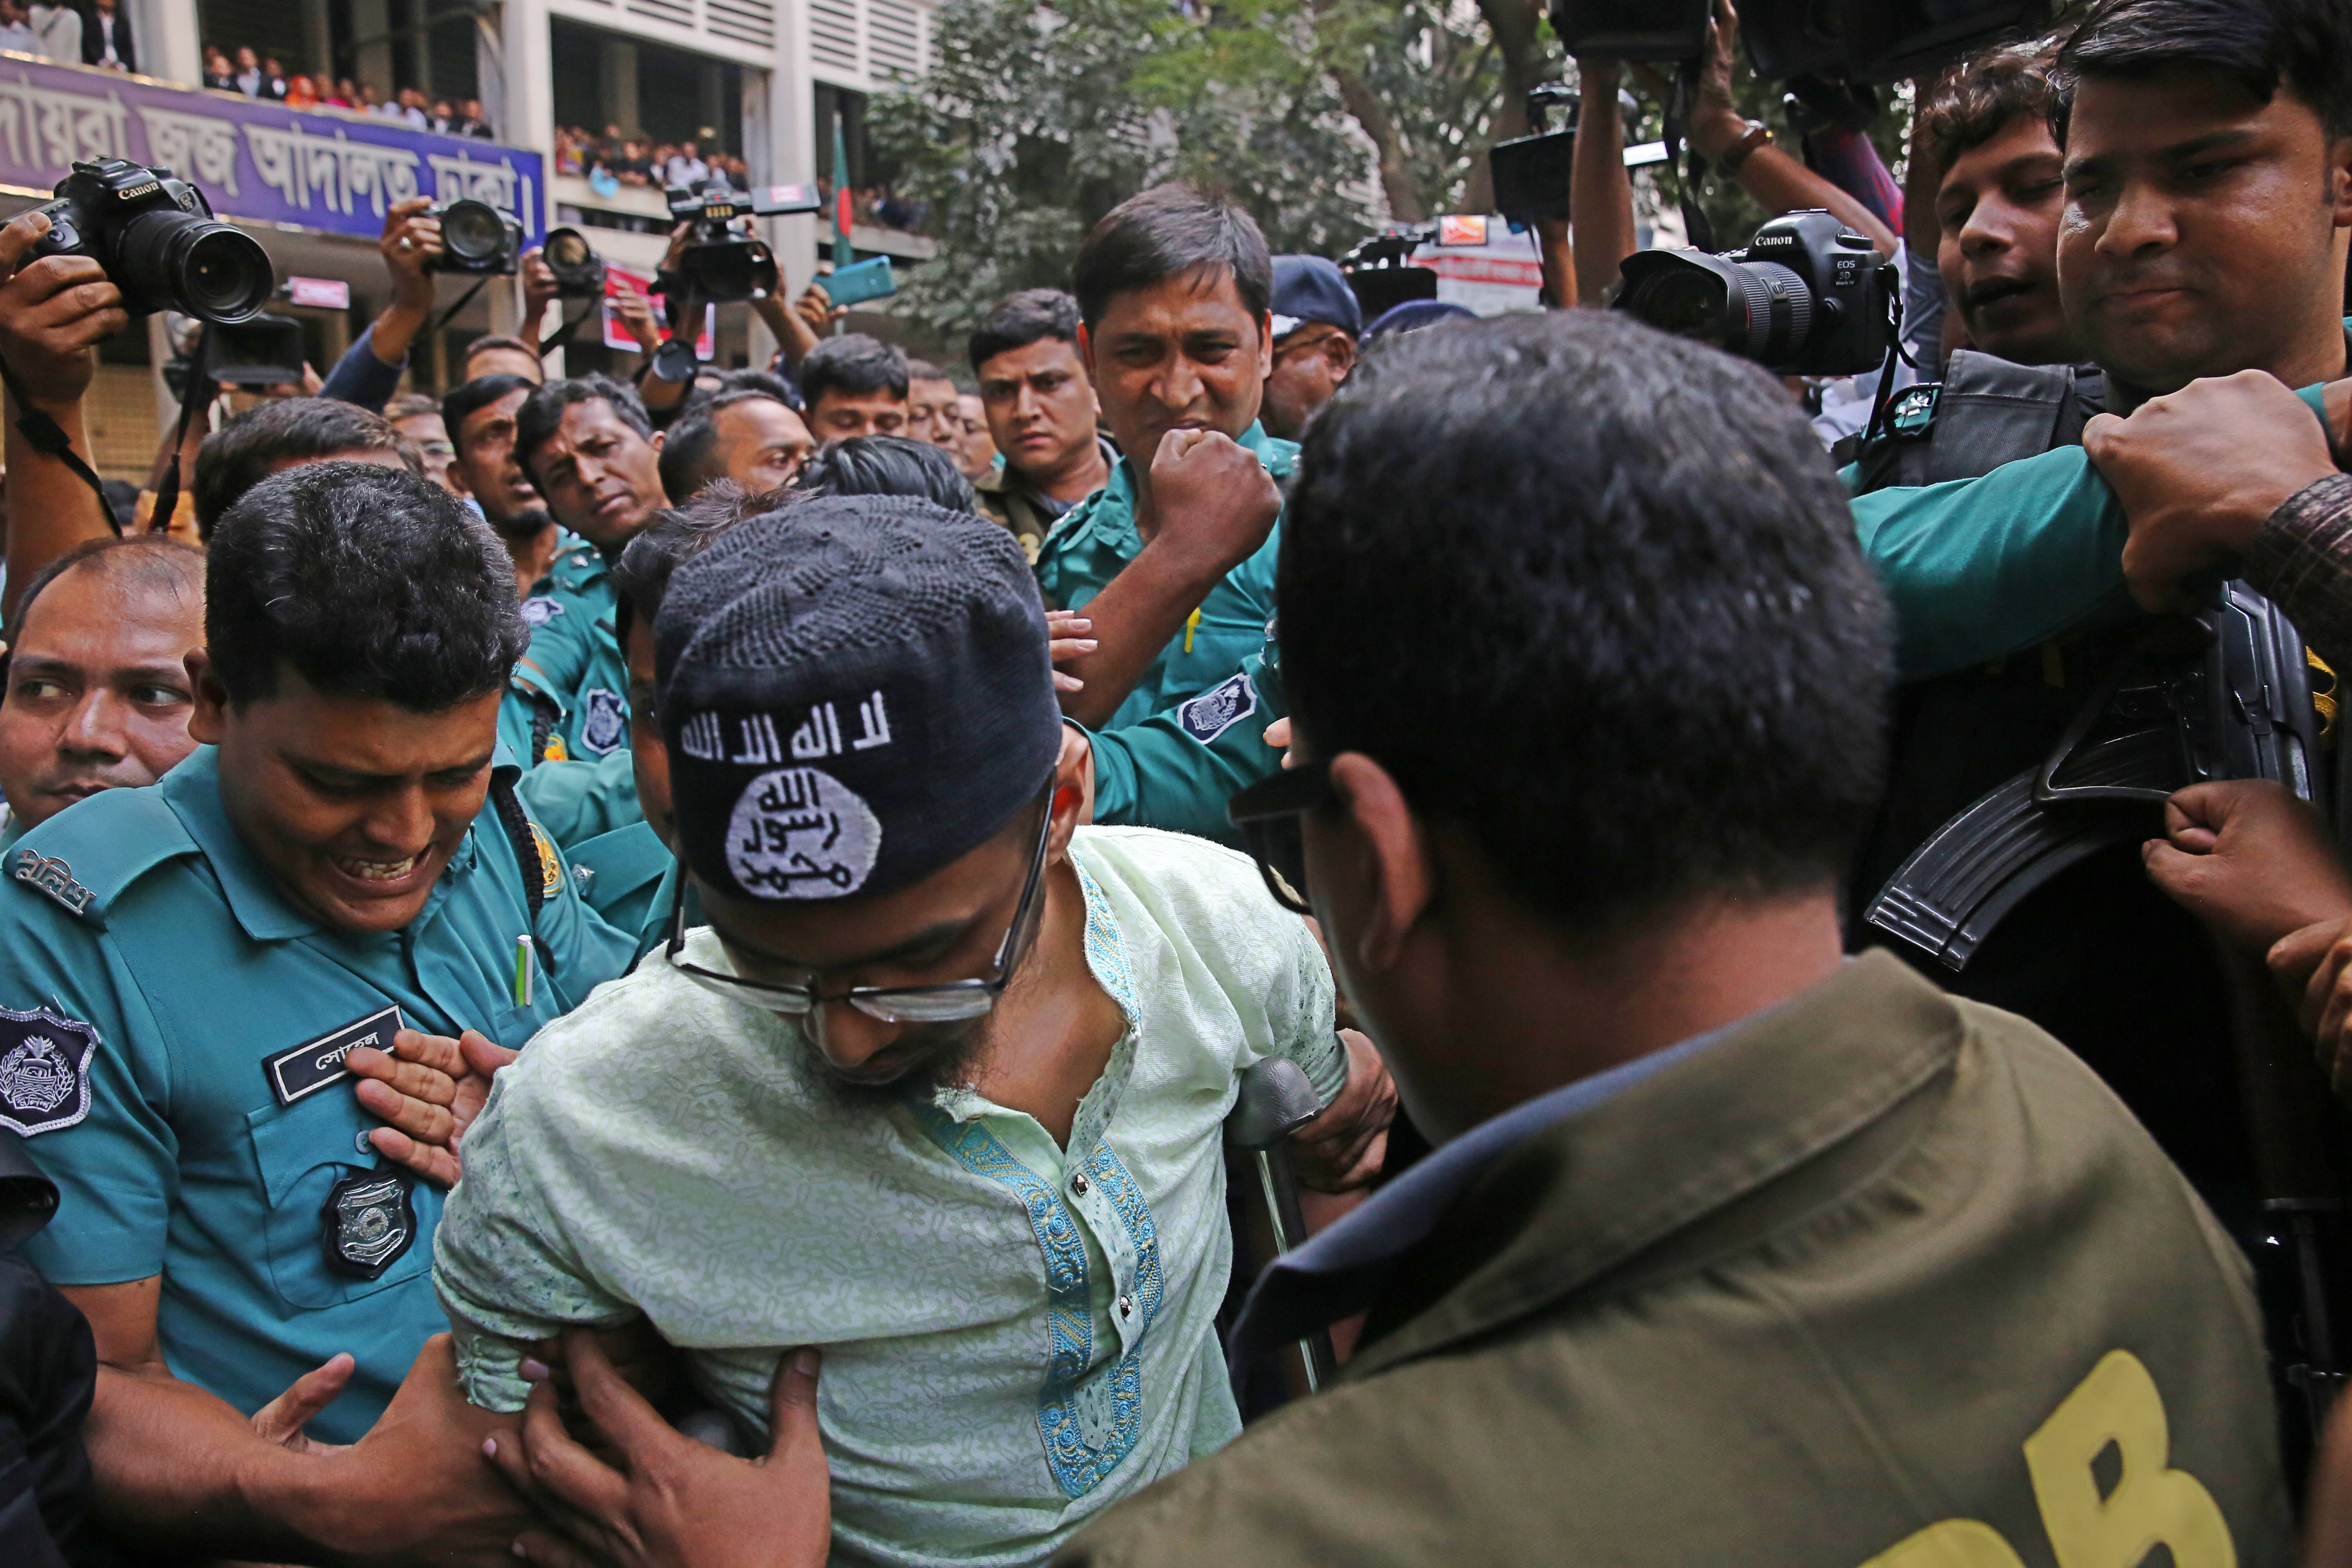 Police escort a member of a banned militant group after he was sentenced to death for an attack on a Dhaka cafe that killed more than 20 people in Wednesday, November 27, 2019